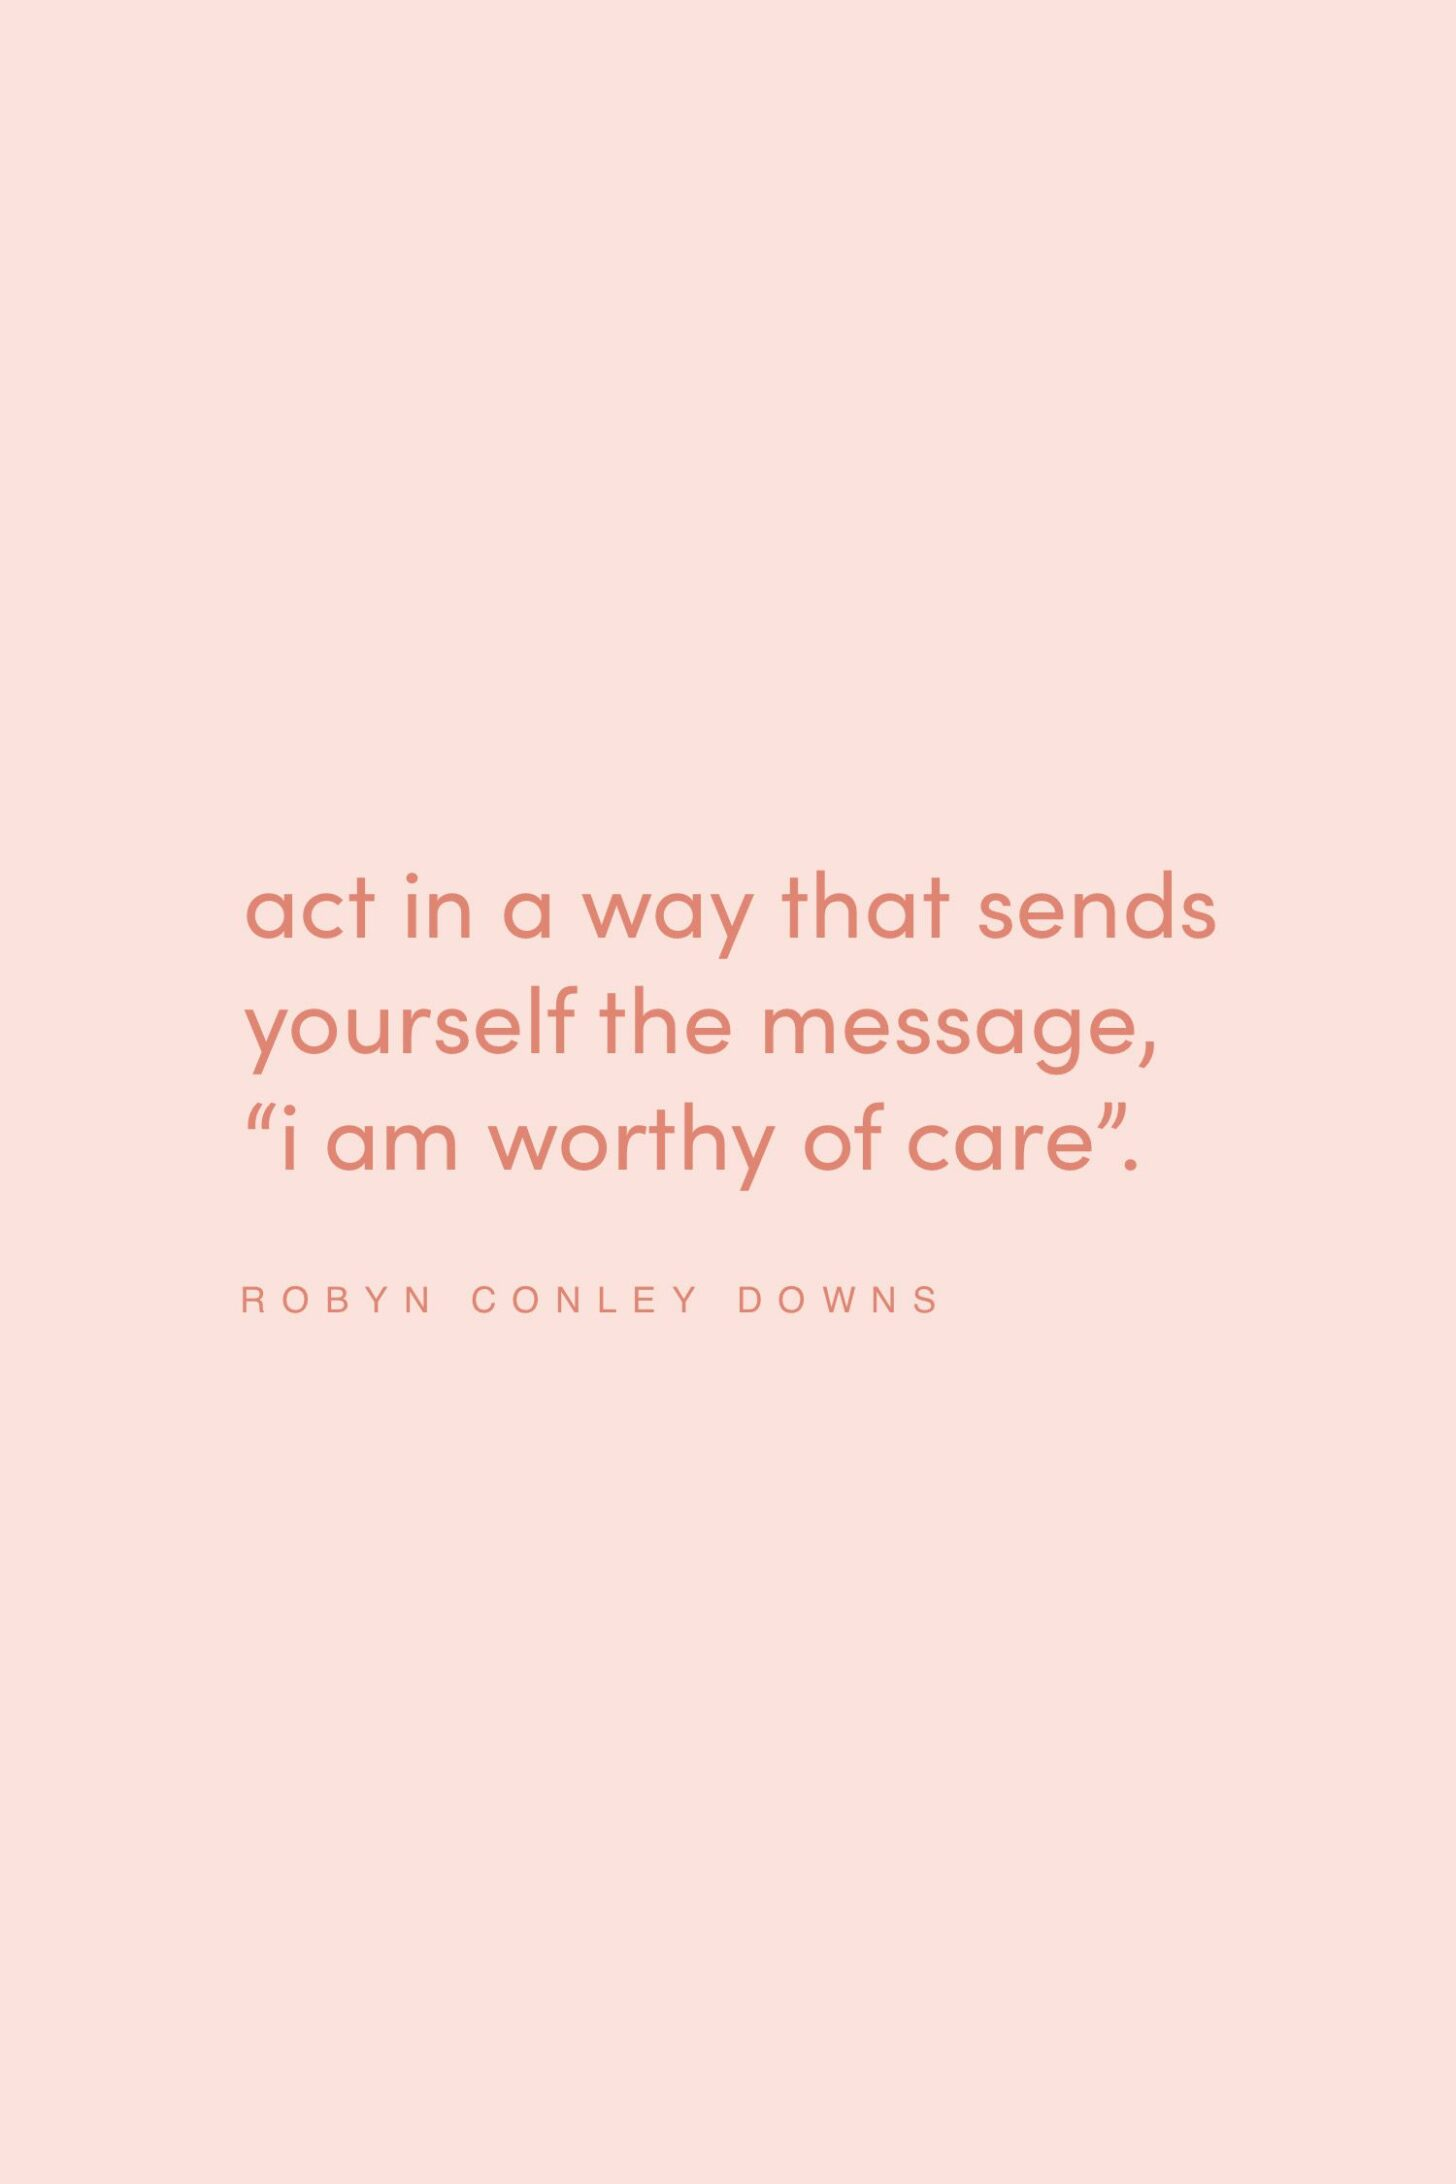 Quote on being worthy of care by Robyn Conley Downs on the Feel Good Effect Podcast #realfoodwholelife #feelgoodeffectpodct #positivityquote #inspirationalquote #motivatioanlquote #selfcompassioquote #selfcarequote #selflovequote #iamworthy